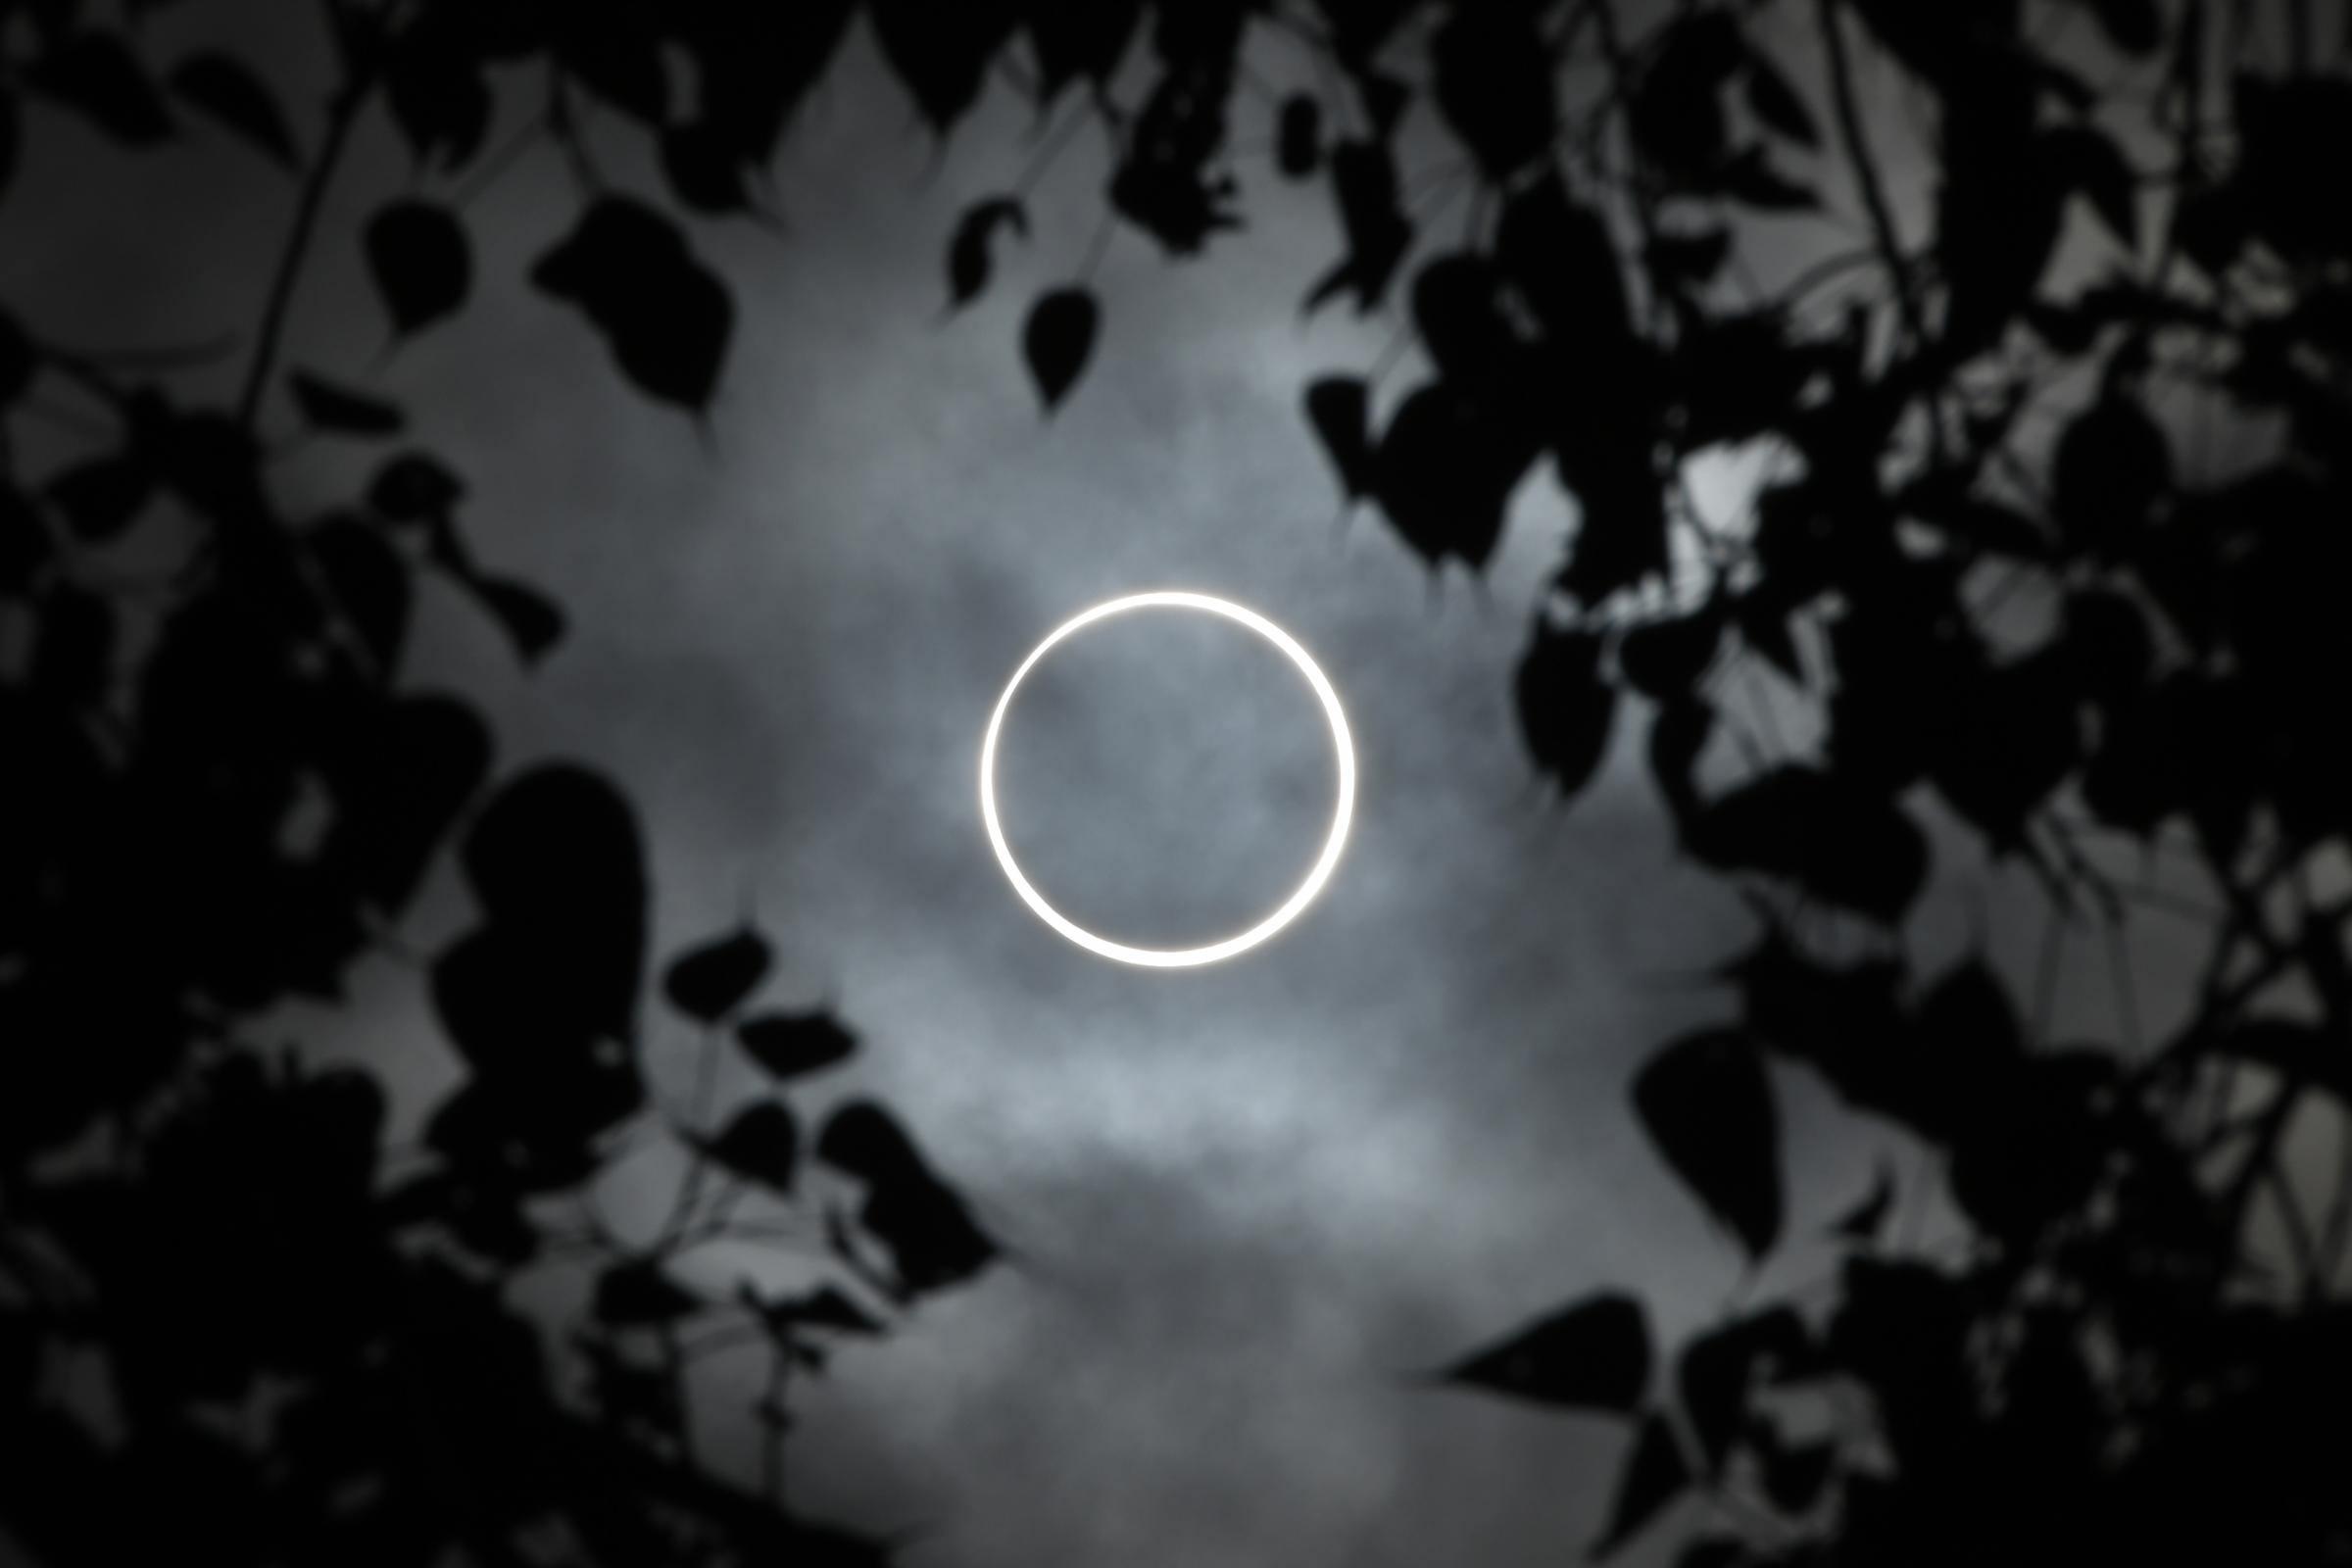 Solar eclipse: When does it start and where can I see it in Scotland?